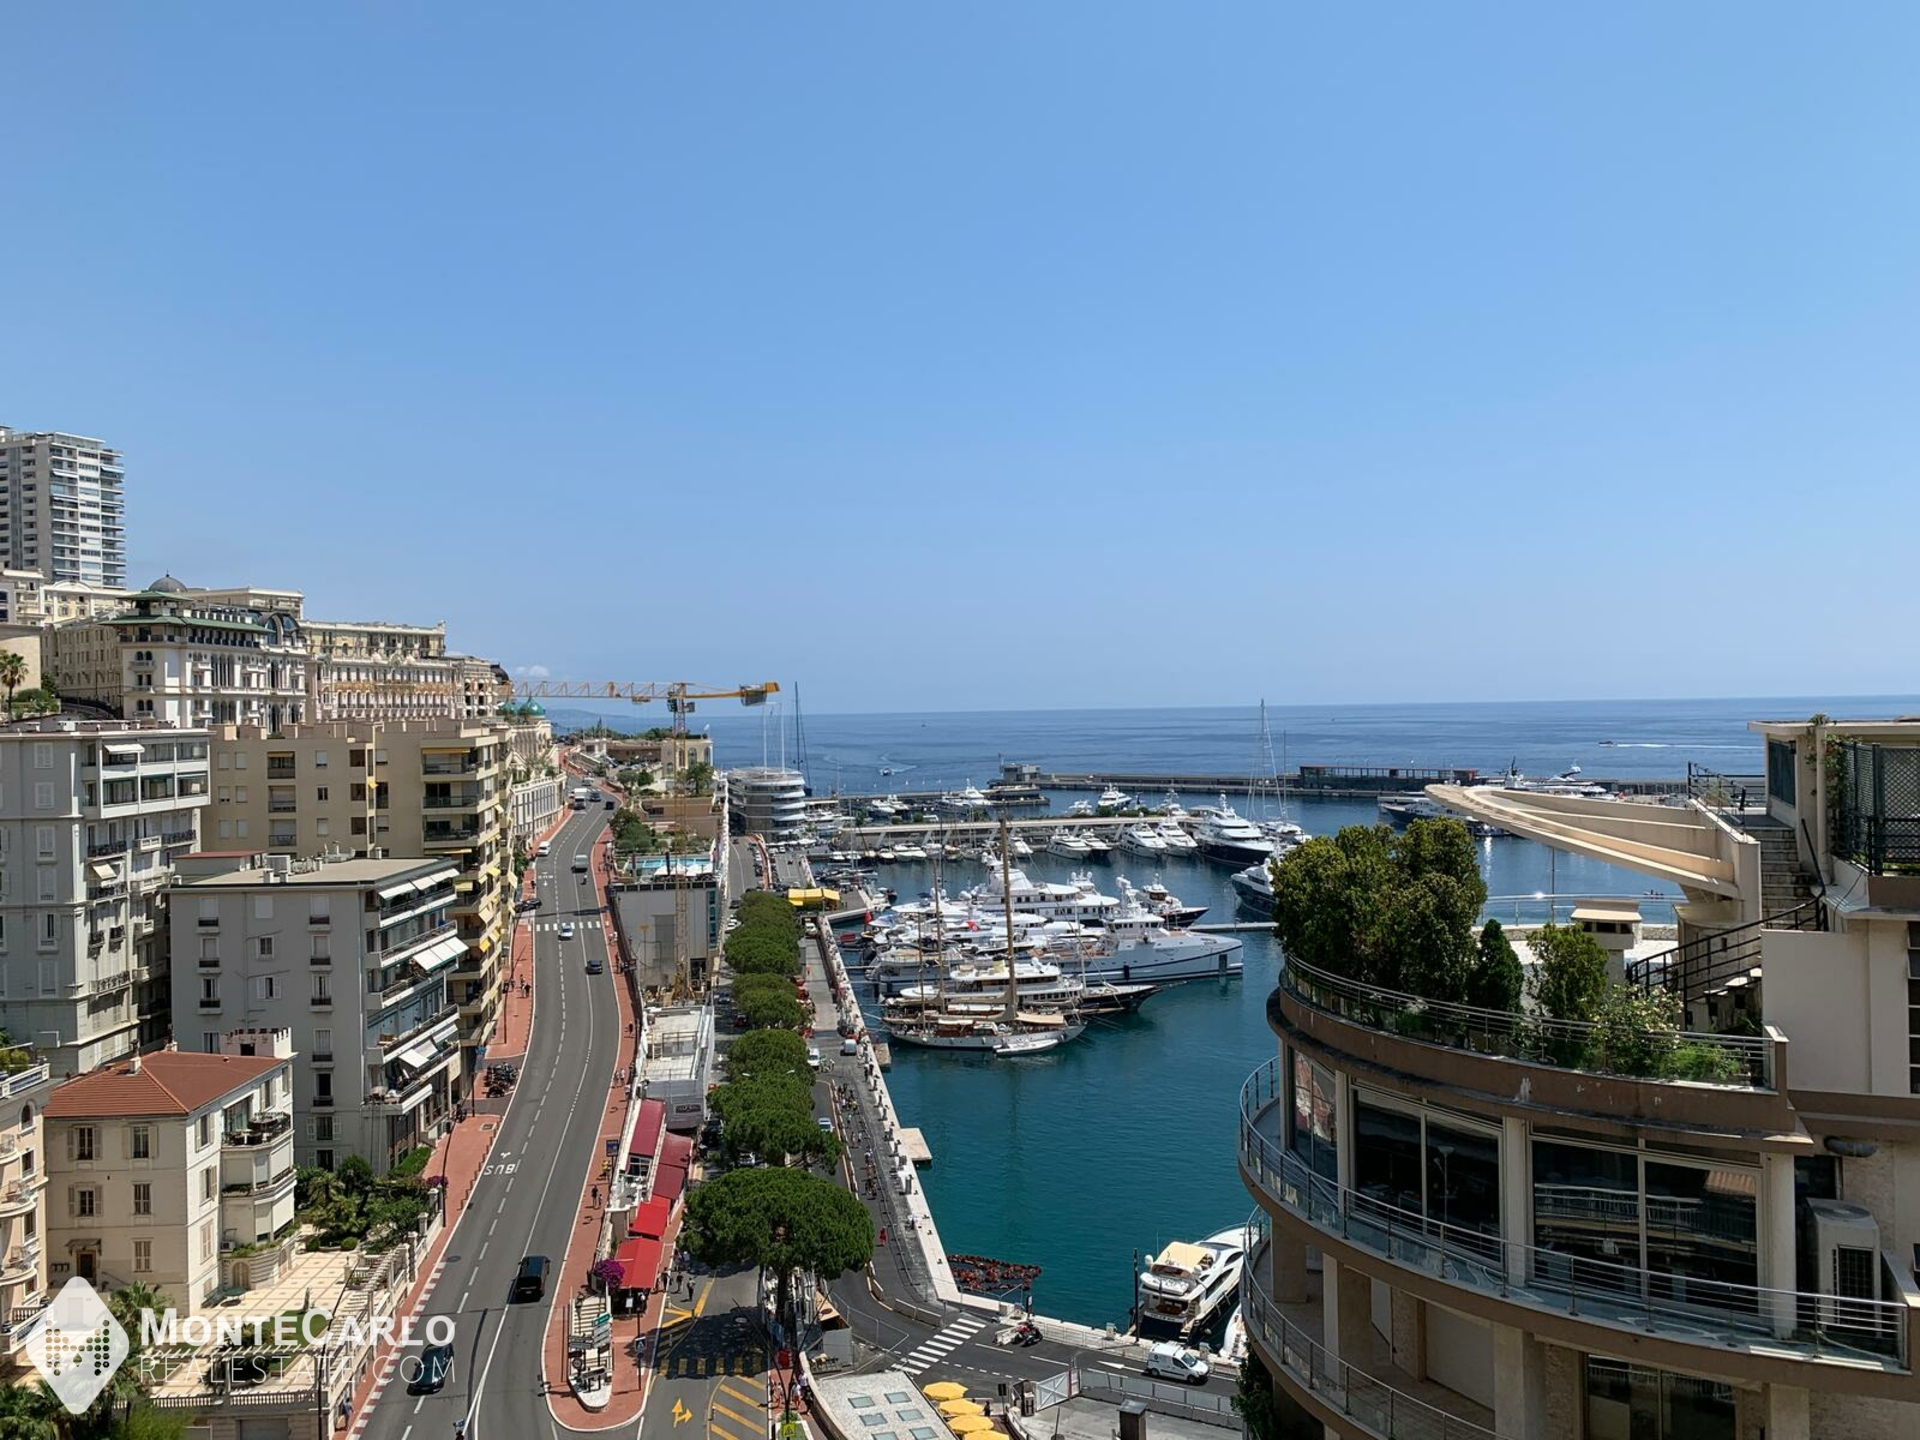 For sale Le Panorama - Apartment / 3 rooms : 7 500 000 € | Monte-Carlo Real Estate [799V75A-RC]